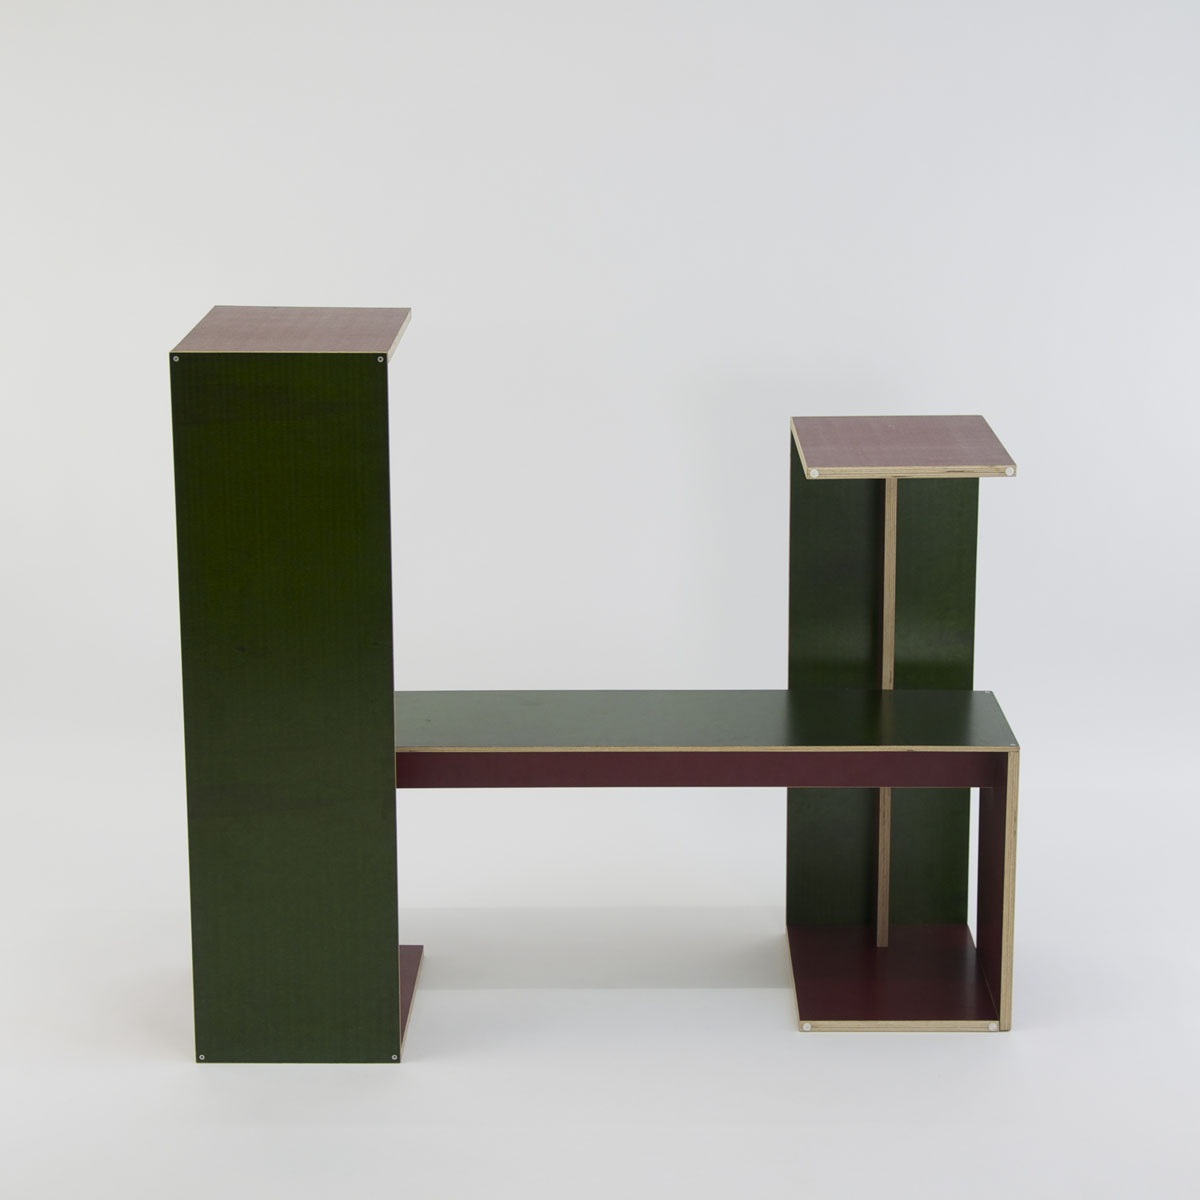 Freydenberg_Bench_Rocking_14.jpg